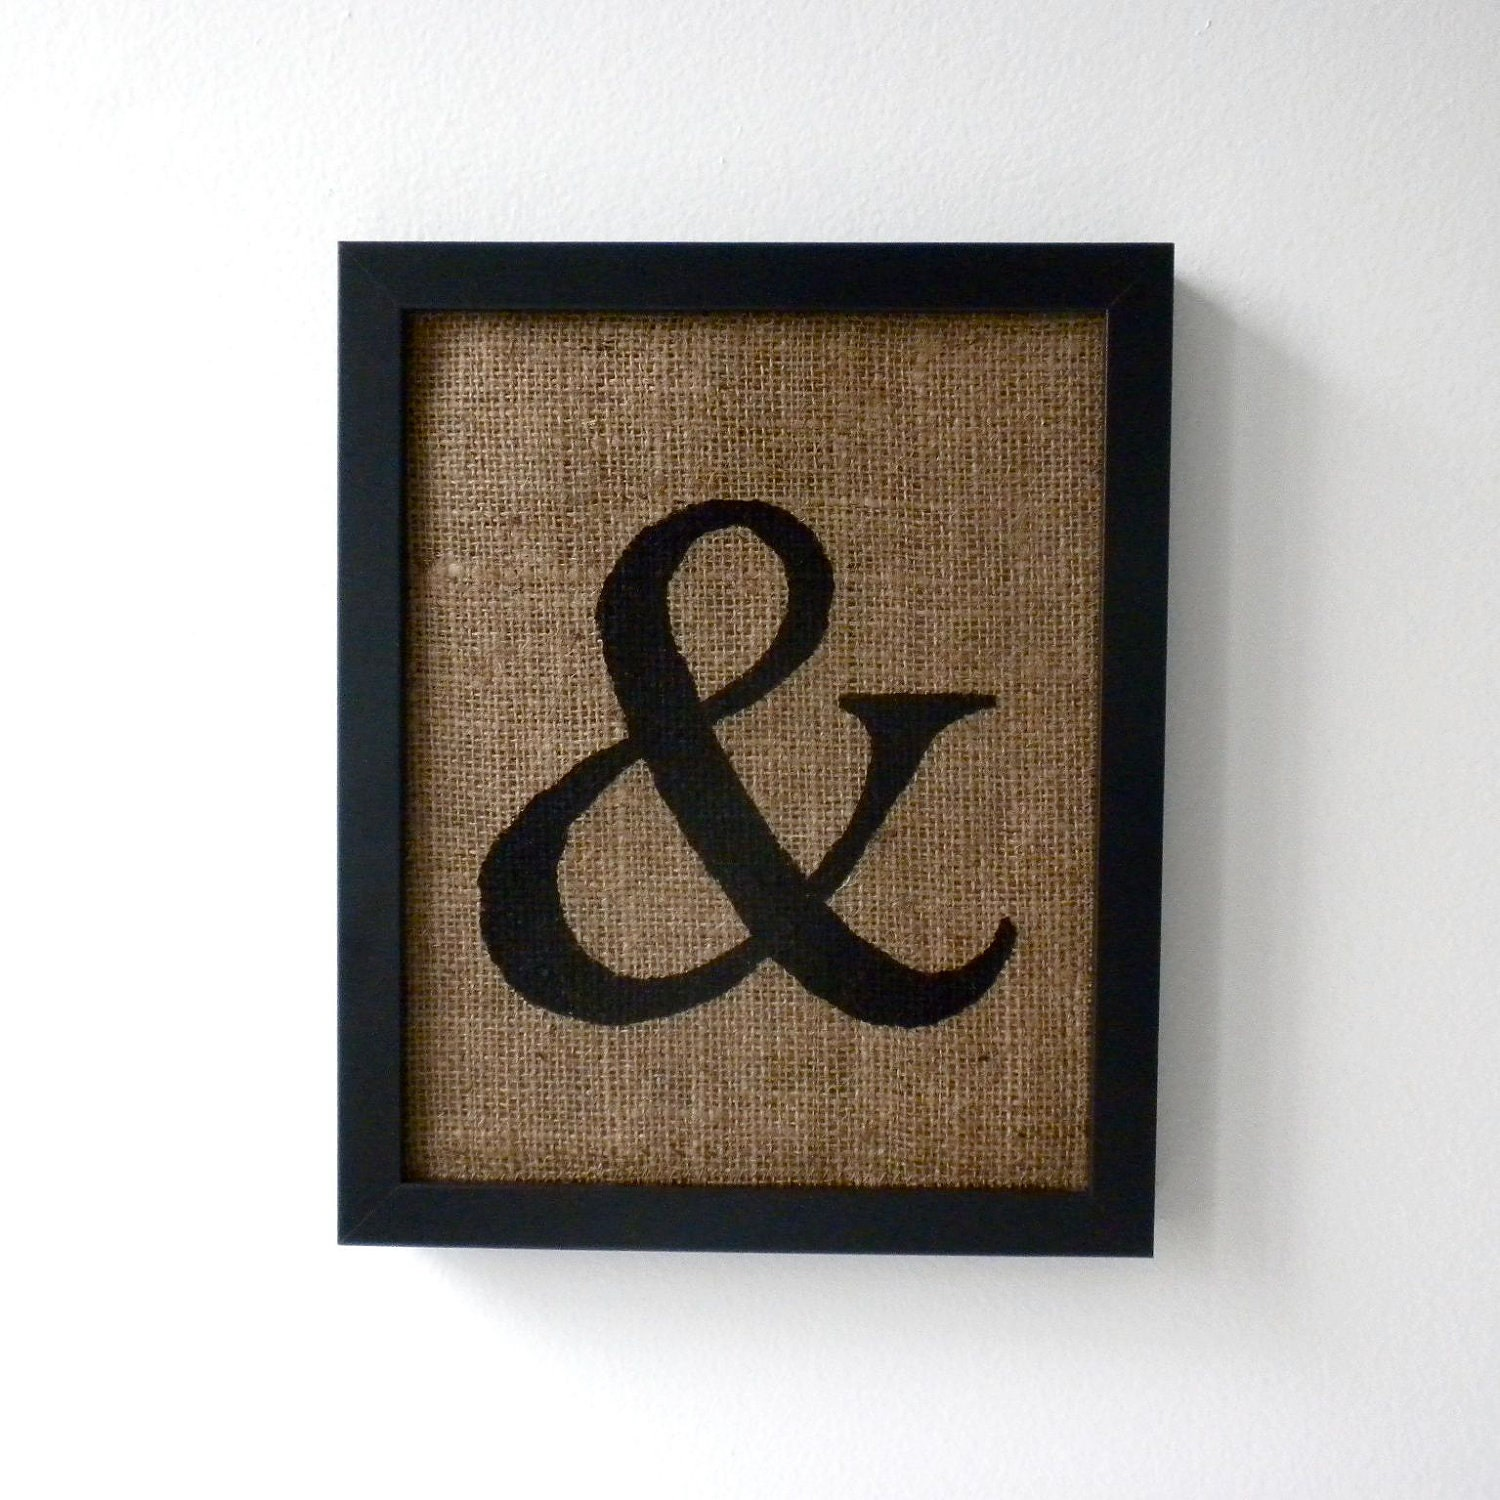 Ampersand burlap wall decor alphabet art monogram by laxtoyvr for Ampersand decor